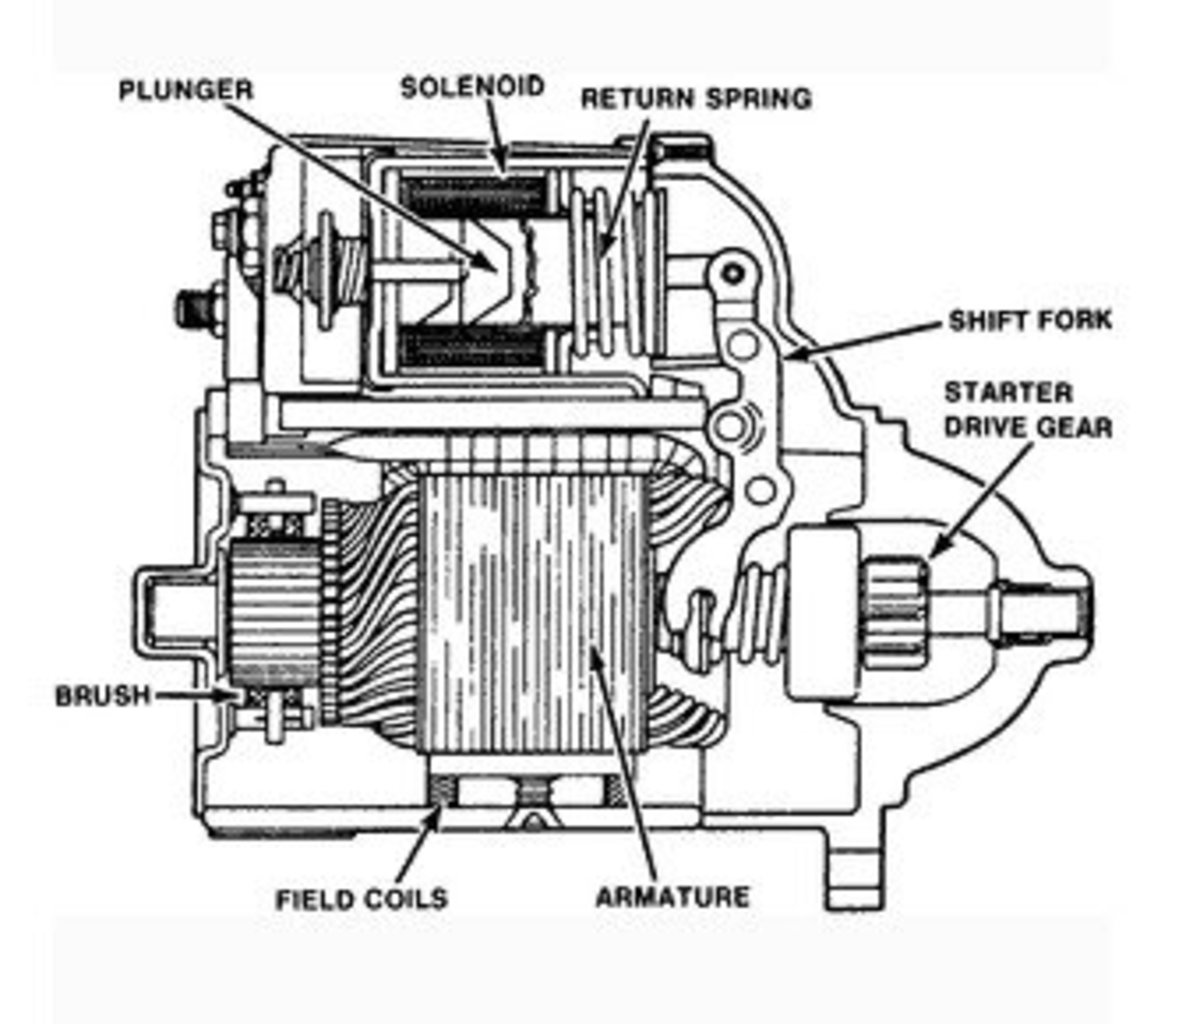 How To Use Voltage Drop To Troubleshoot The Starter System